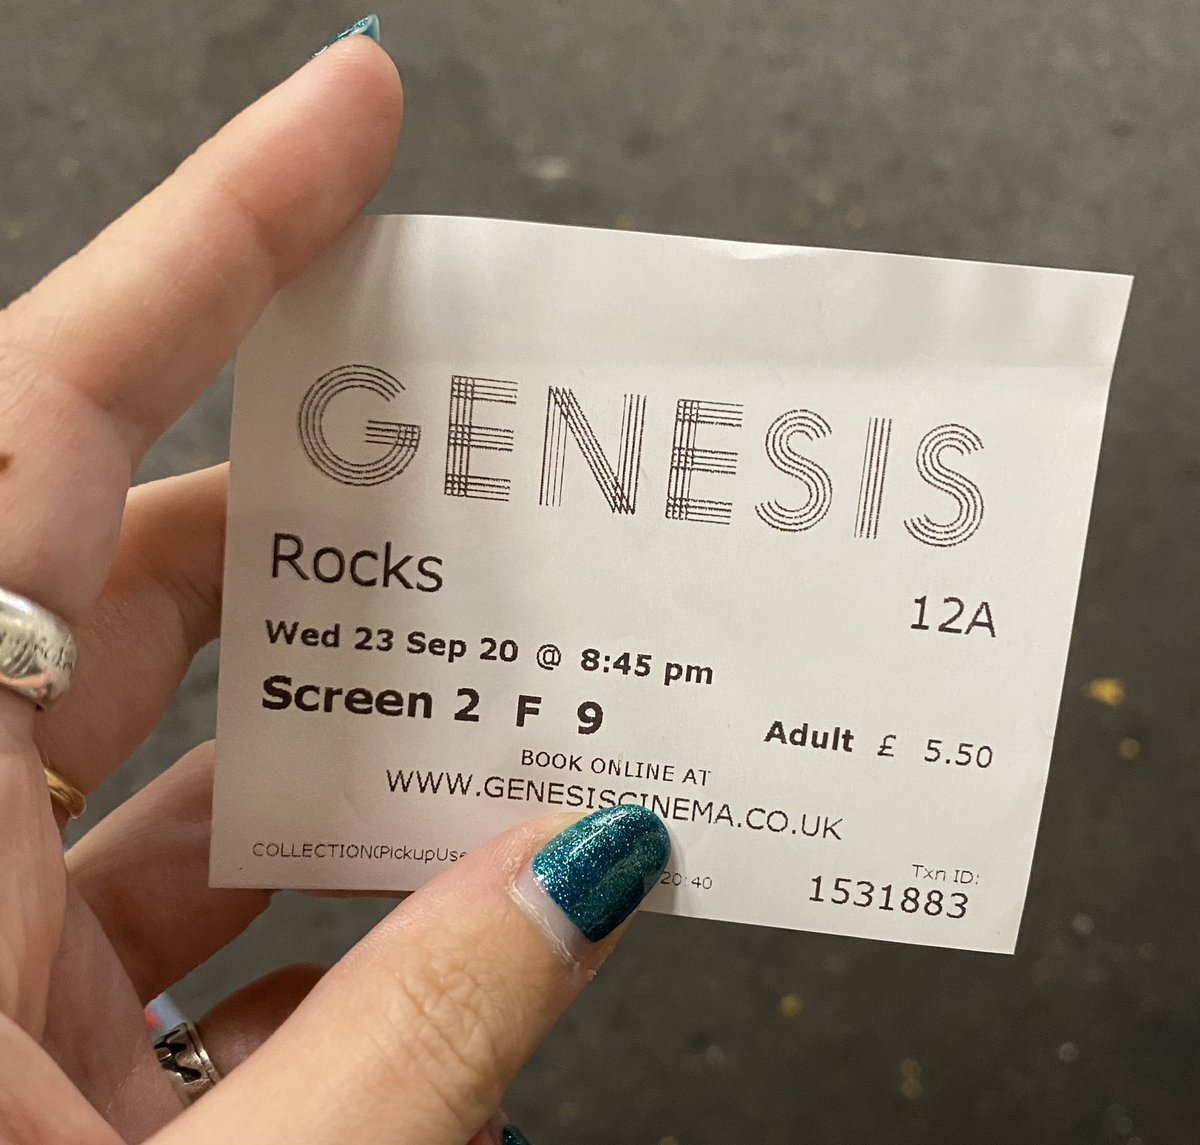 Saw @RocksTheFilm last night at @GenesisCinema and it was so brilliantly beautiful. Cried a lot, laughed a lot and will be thinking about it for a long time 💙